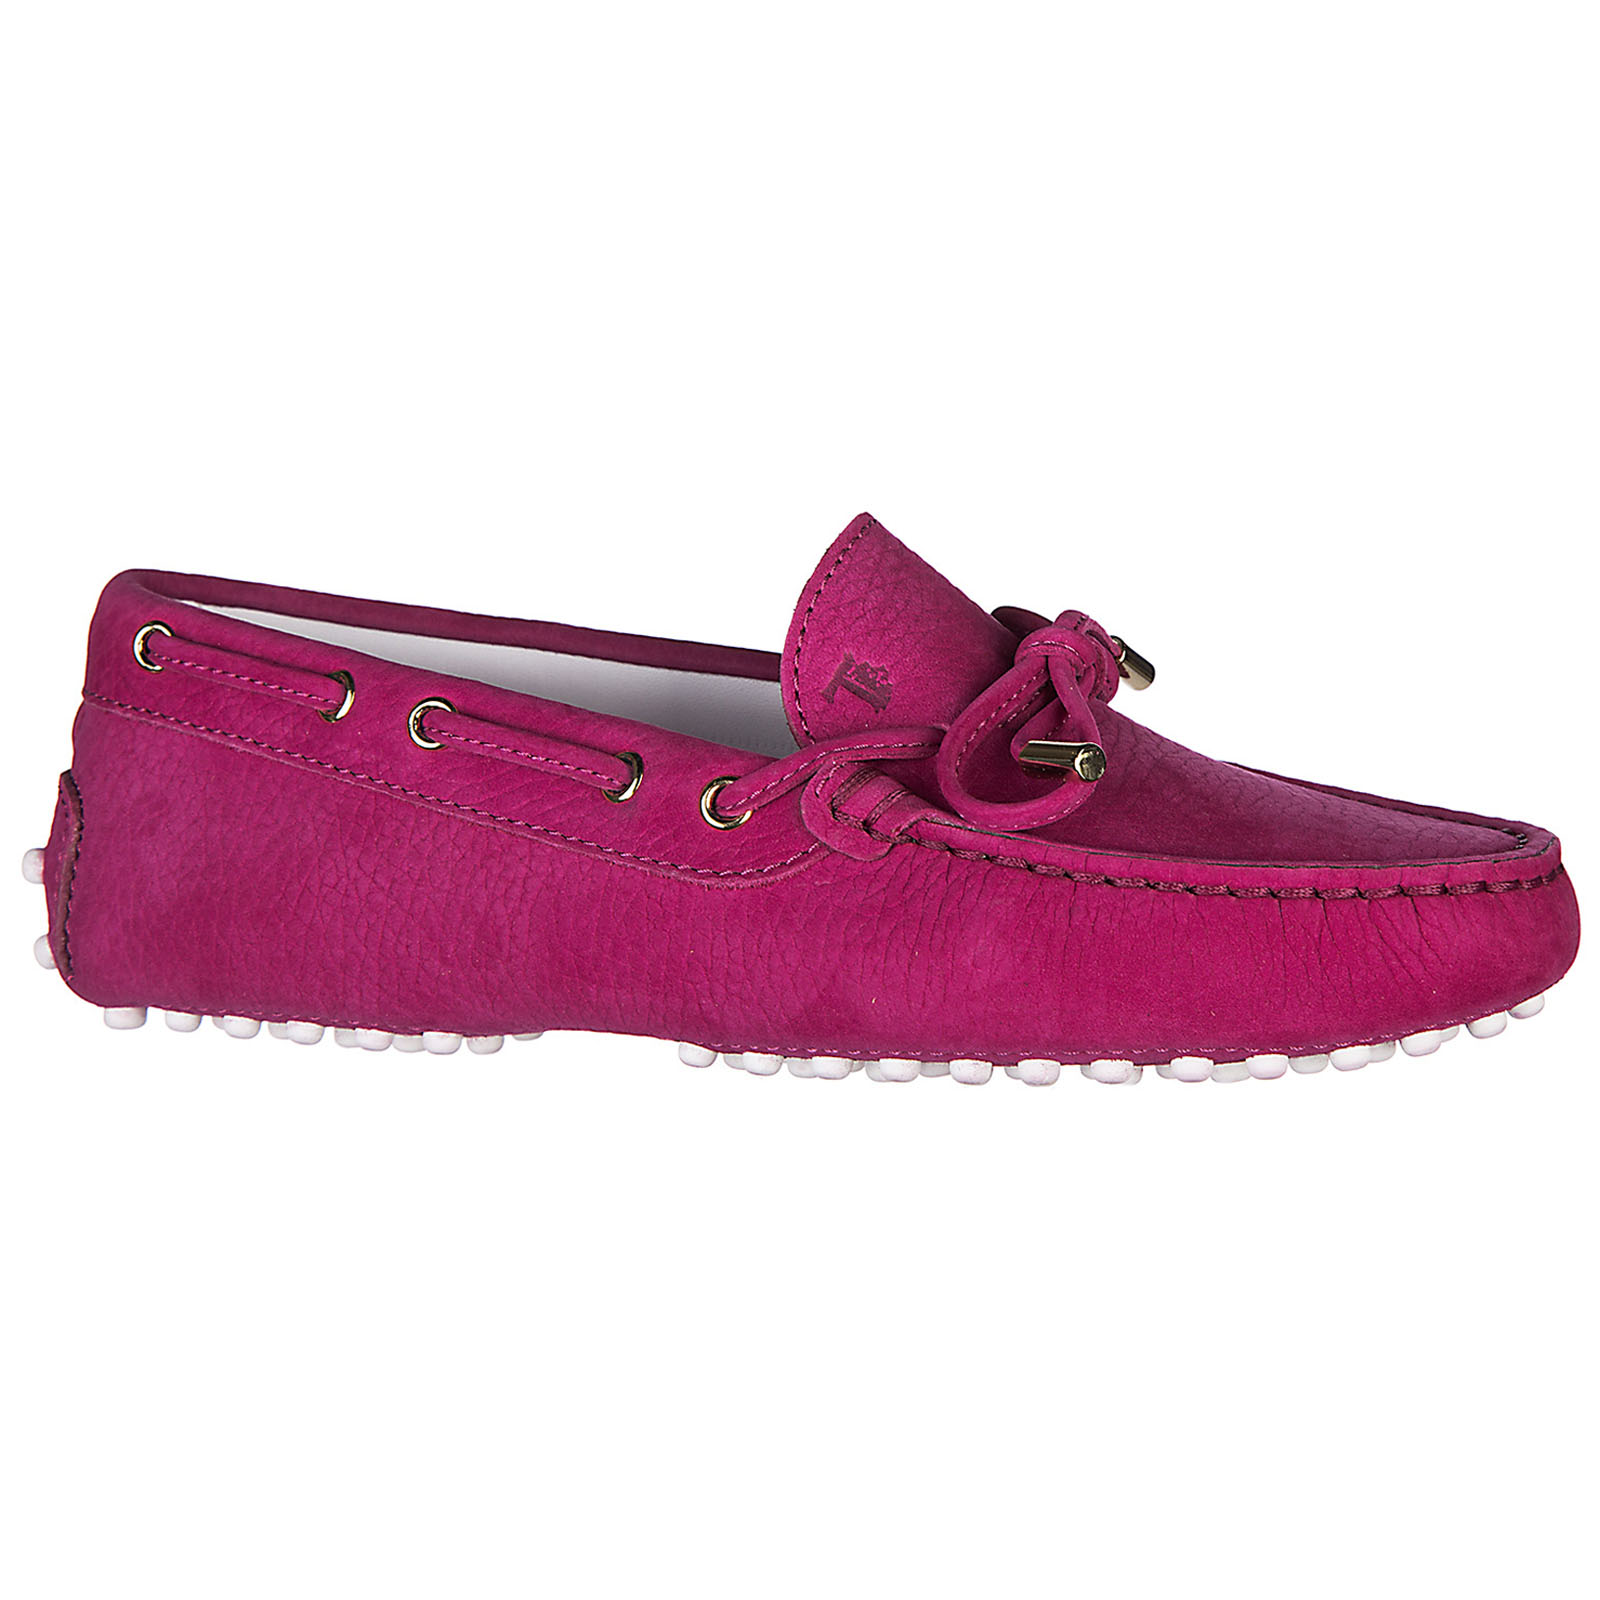 Girls shoes child loafers moccassins leather laccetto occhielli gommino junior